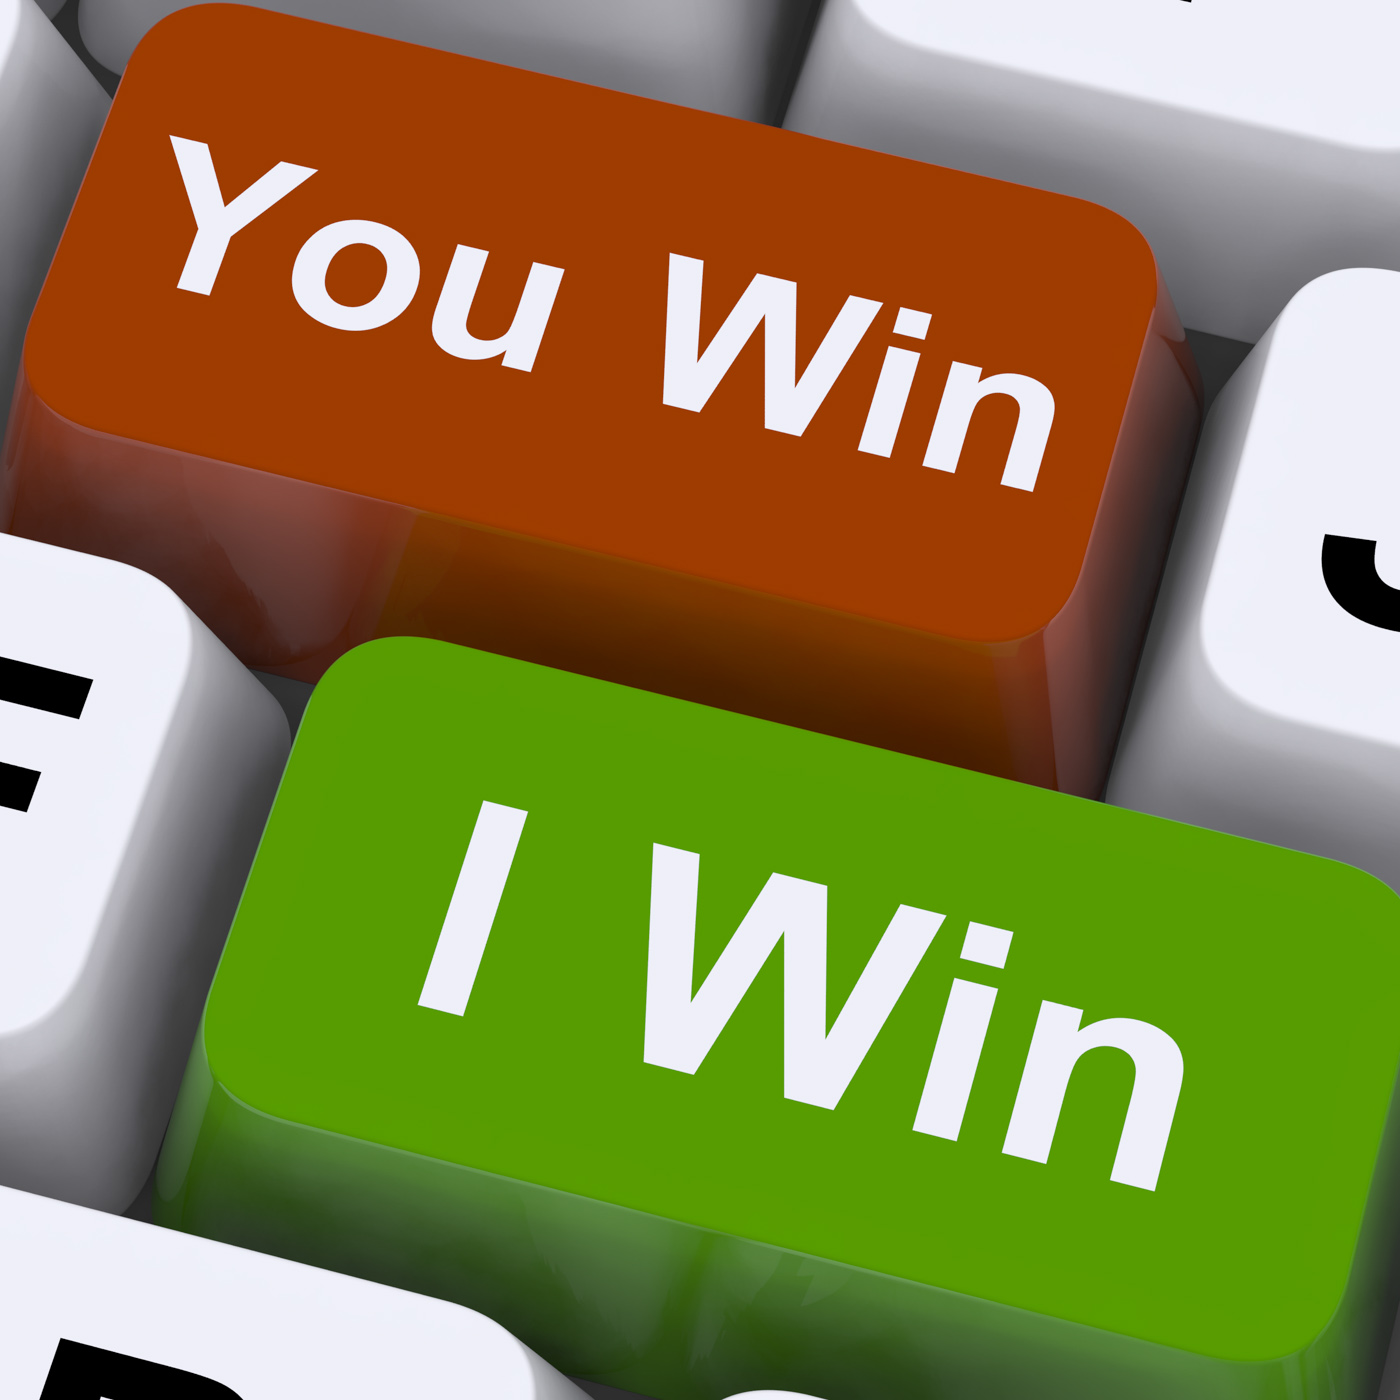 You Or I Win Keys Show Gambling Or Victory, Compromise, Gamble, Gambling, Game, HQ Photo